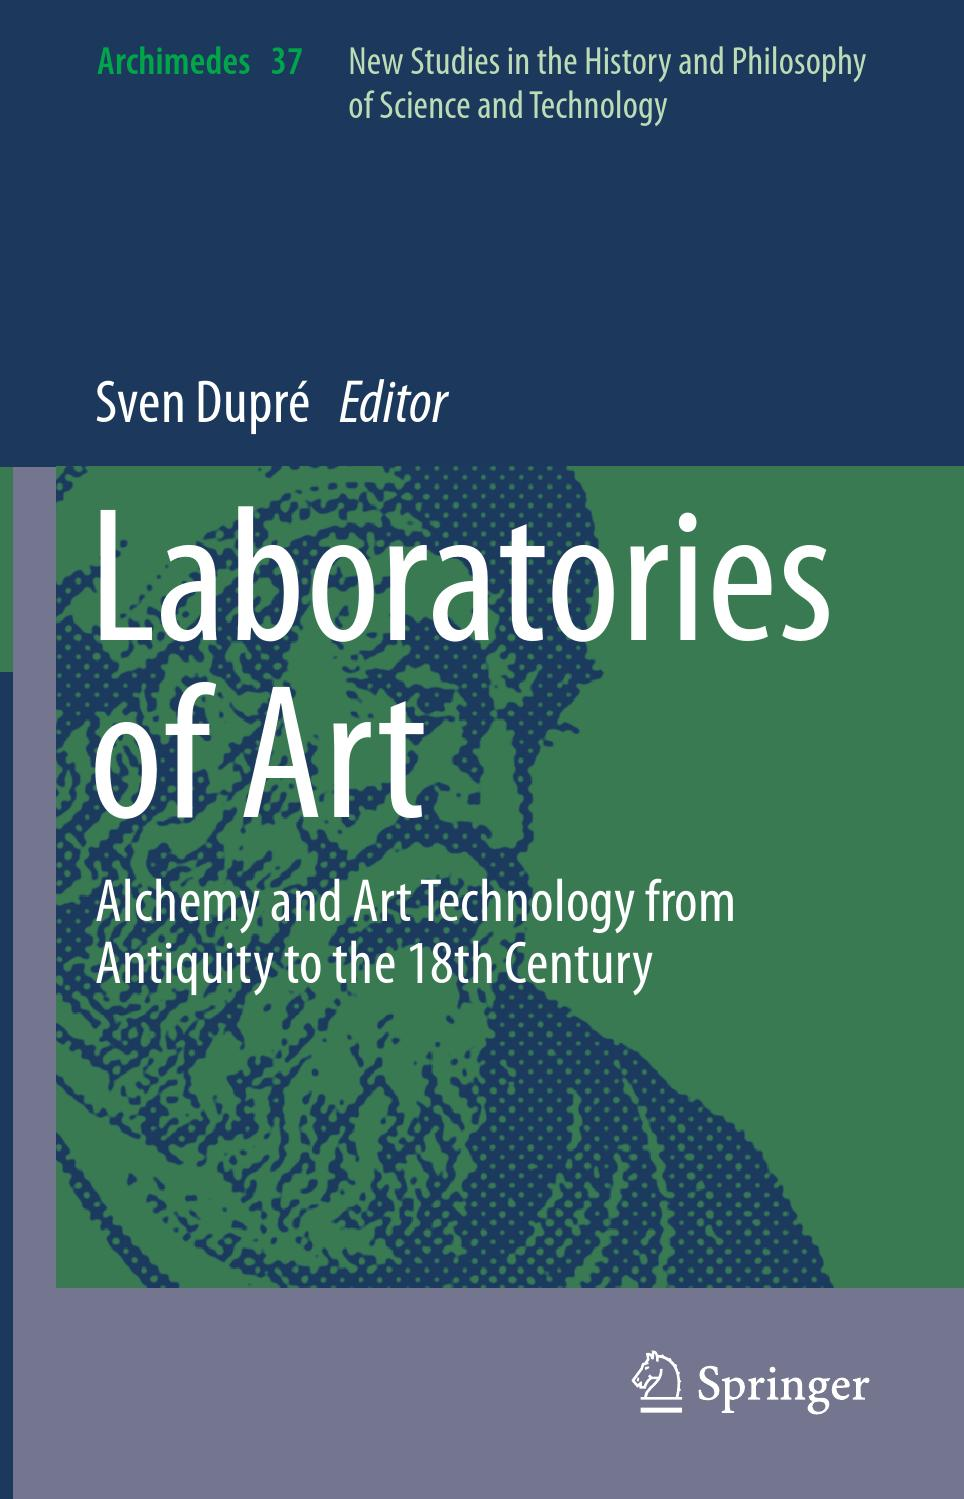 medium resolution of laboratories of art alchemy and art technology from antiquity to the 18th century art ebook by at lye fresko issuu